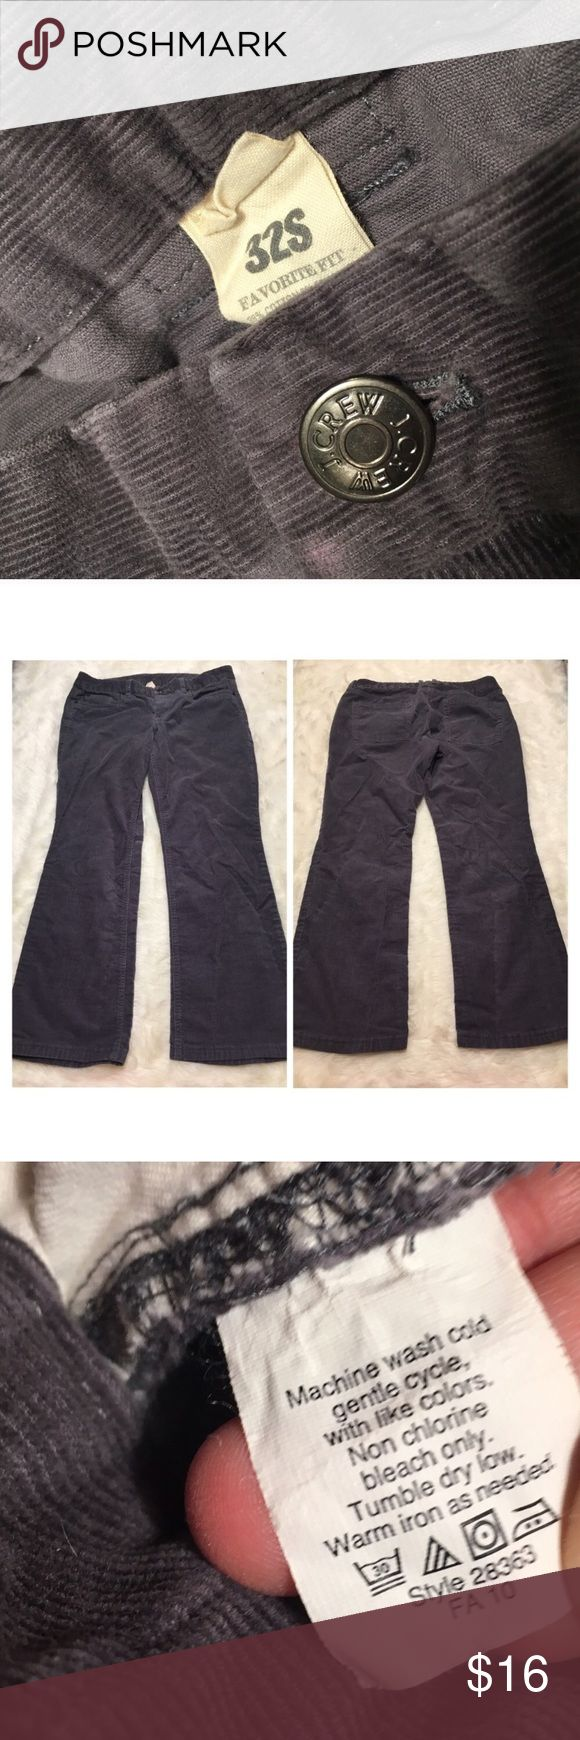 """J. CREW Corduroy Favorite Fit Botcut Pants Grey stretch vintage bootcut cords. 32s Size 32 Short. Good used condition. Discoloration near the back pocket as pictured. Make me an offer - price negotiable!  Rise- 9"""", Leg Opening- 9"""", Inseam- 28.5"""", Waist-18"""" J. Crew Pants Boot Cut & Flare"""